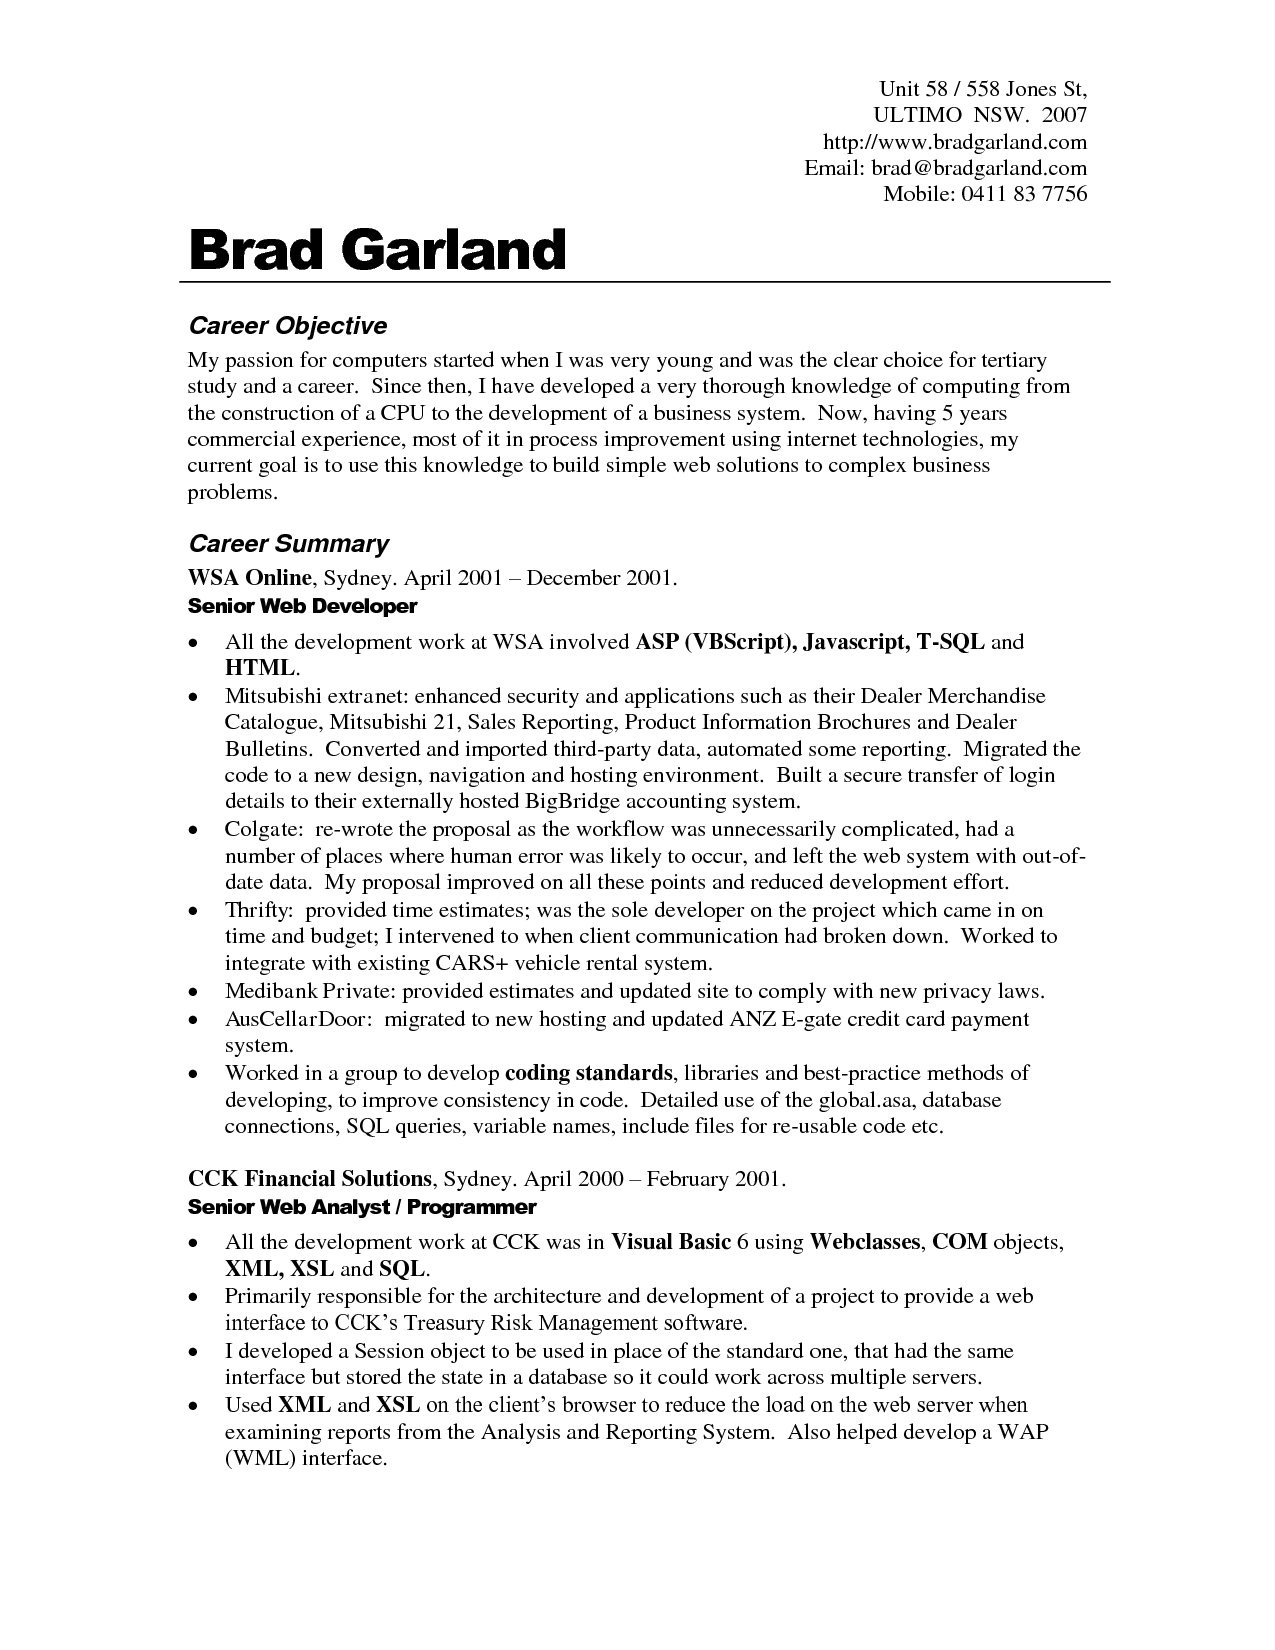 resume objectives examples best templateresume objective examples application letter sample